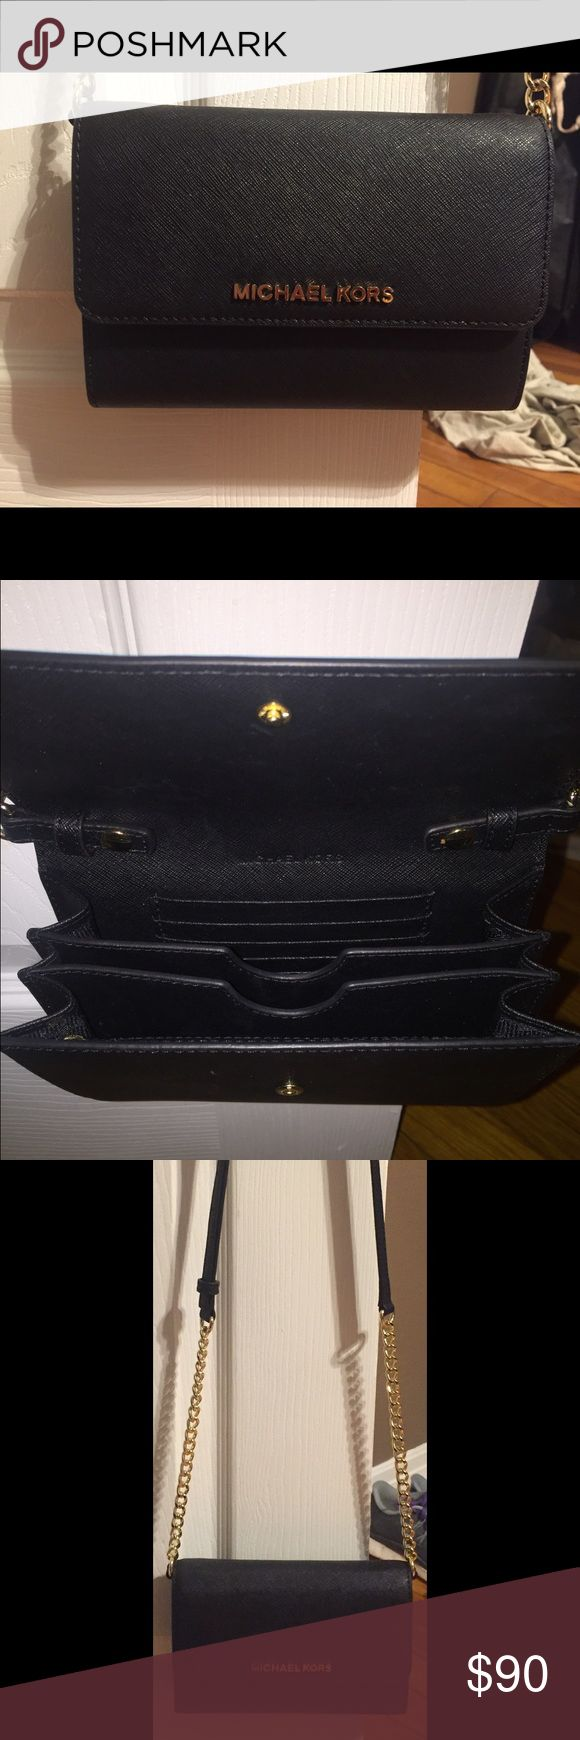 Michael Kors side purse Leather, Adjustable strap, 5 card slots, fits iPhone 6 in the pocket, great condition carried once. Michael Kors Bags Shoulder Bags